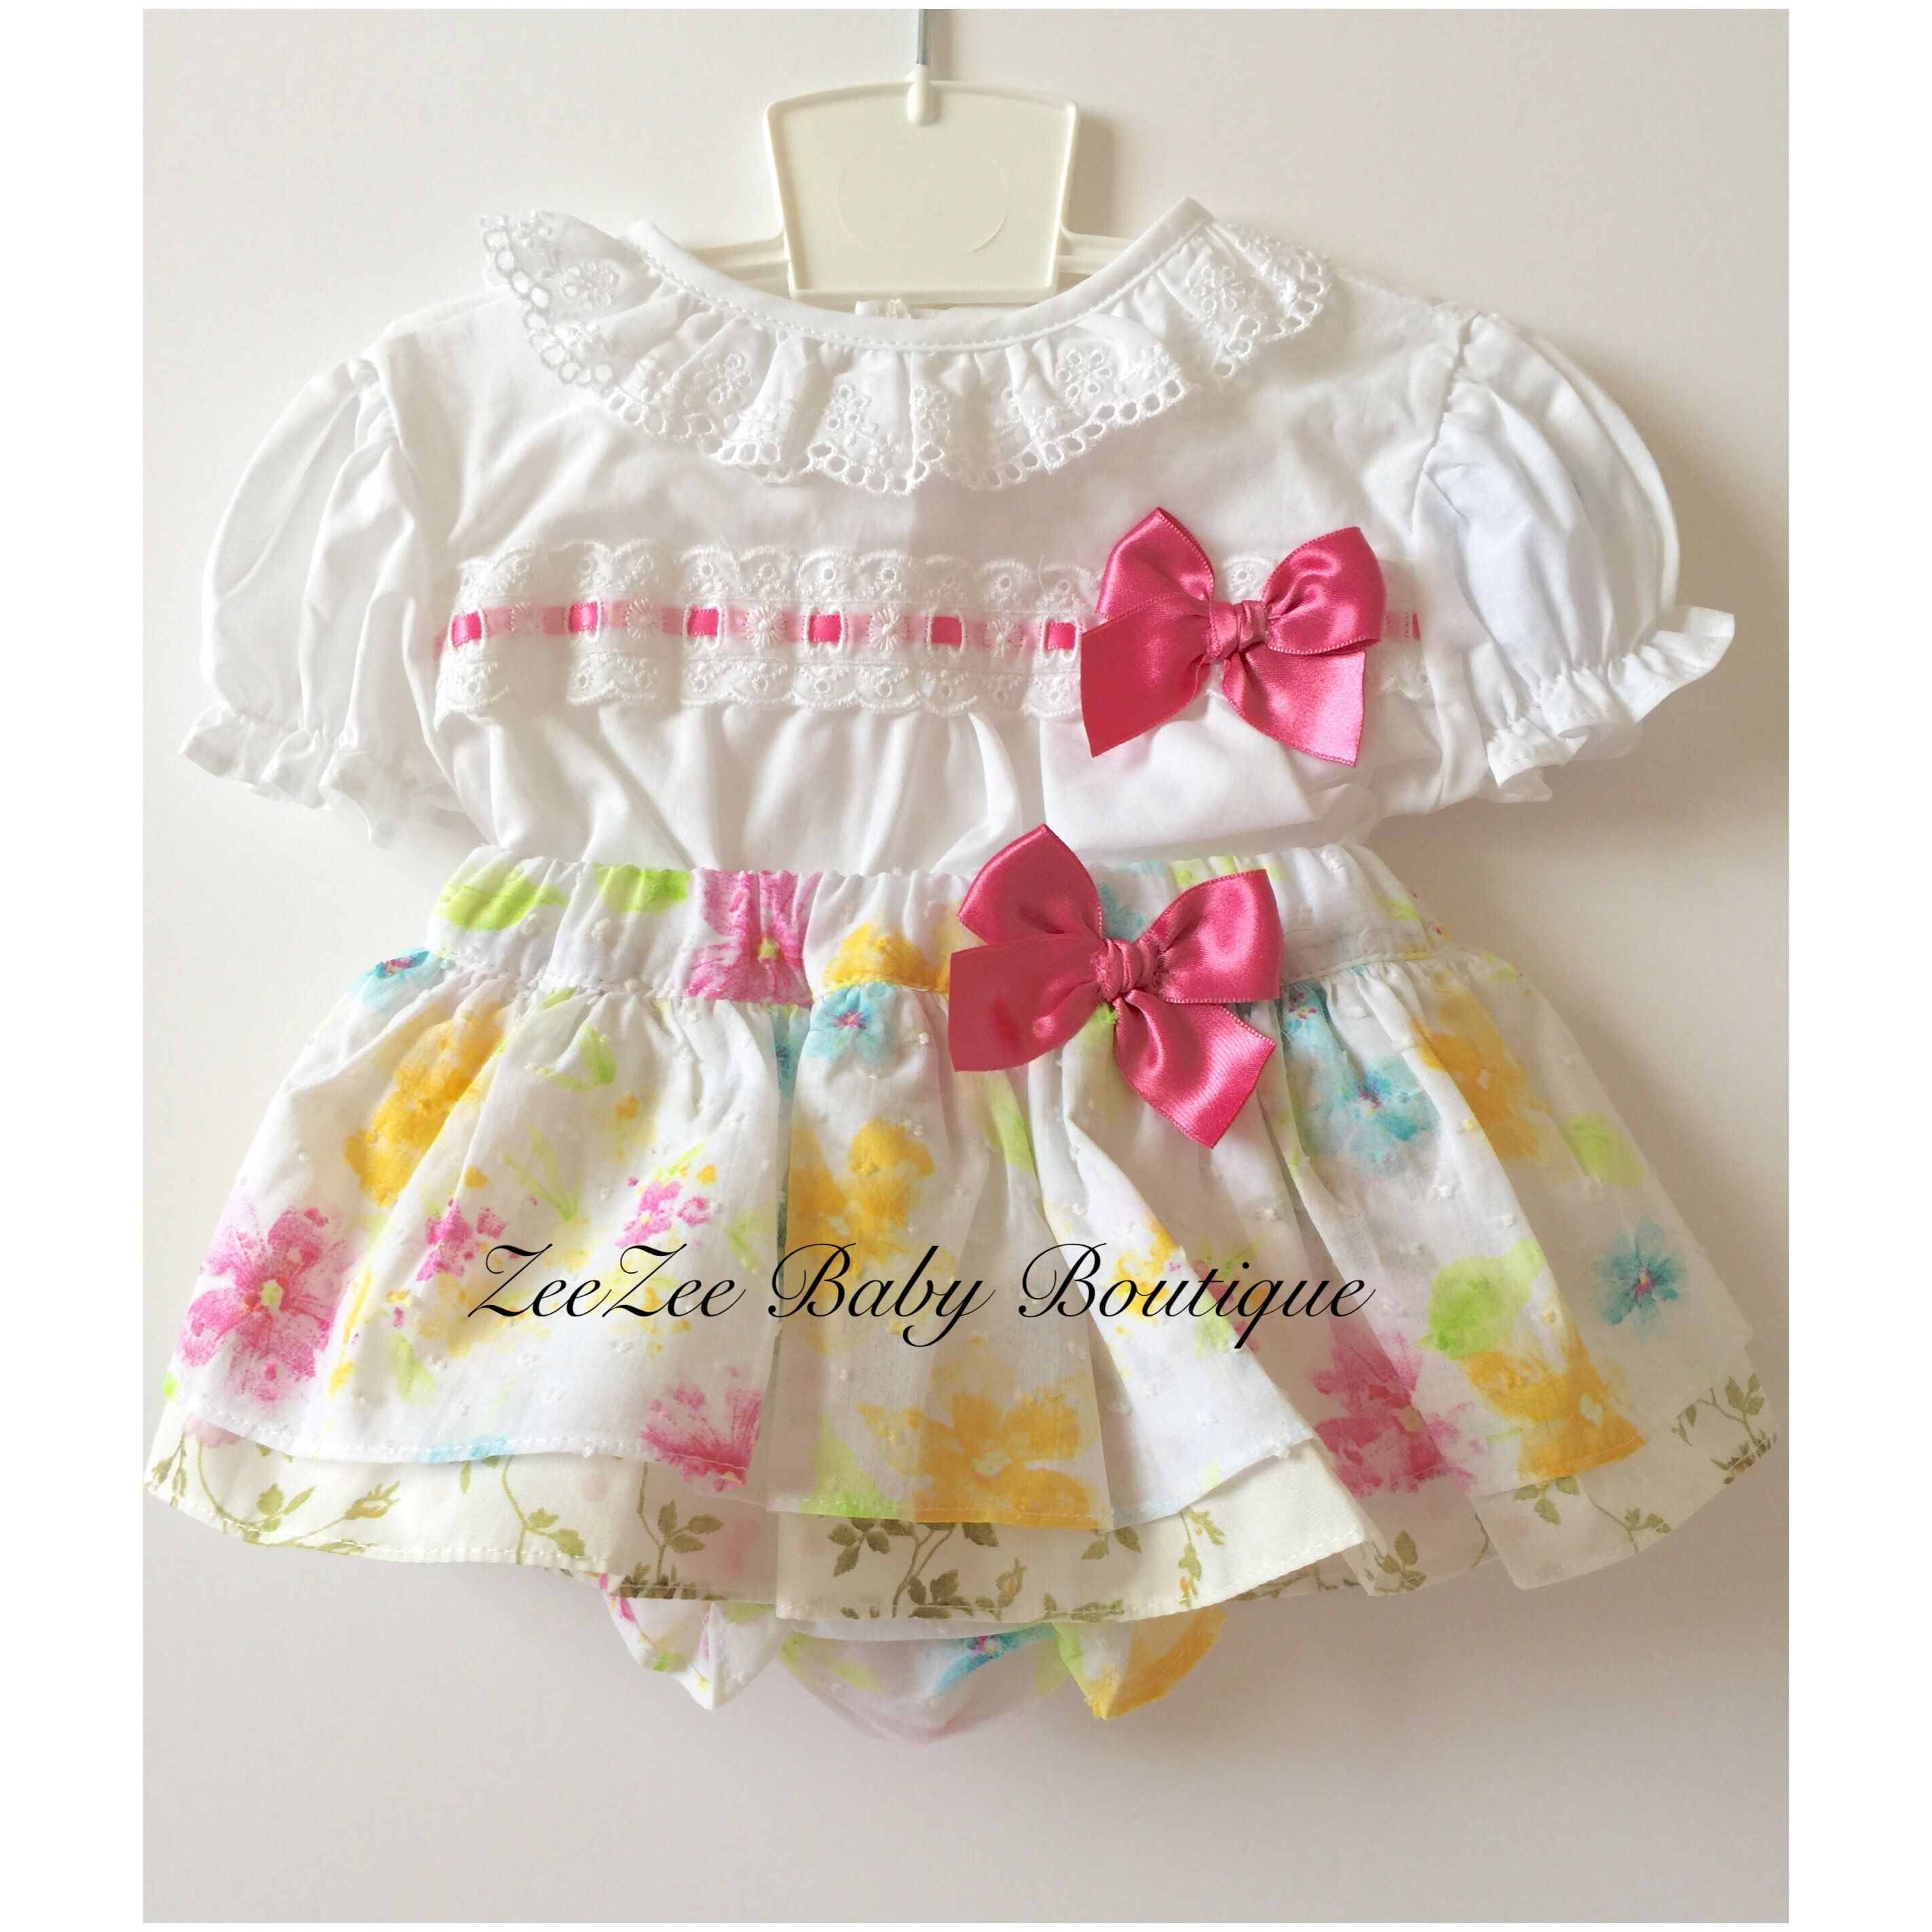 Two piece spanish skirt set available to order online